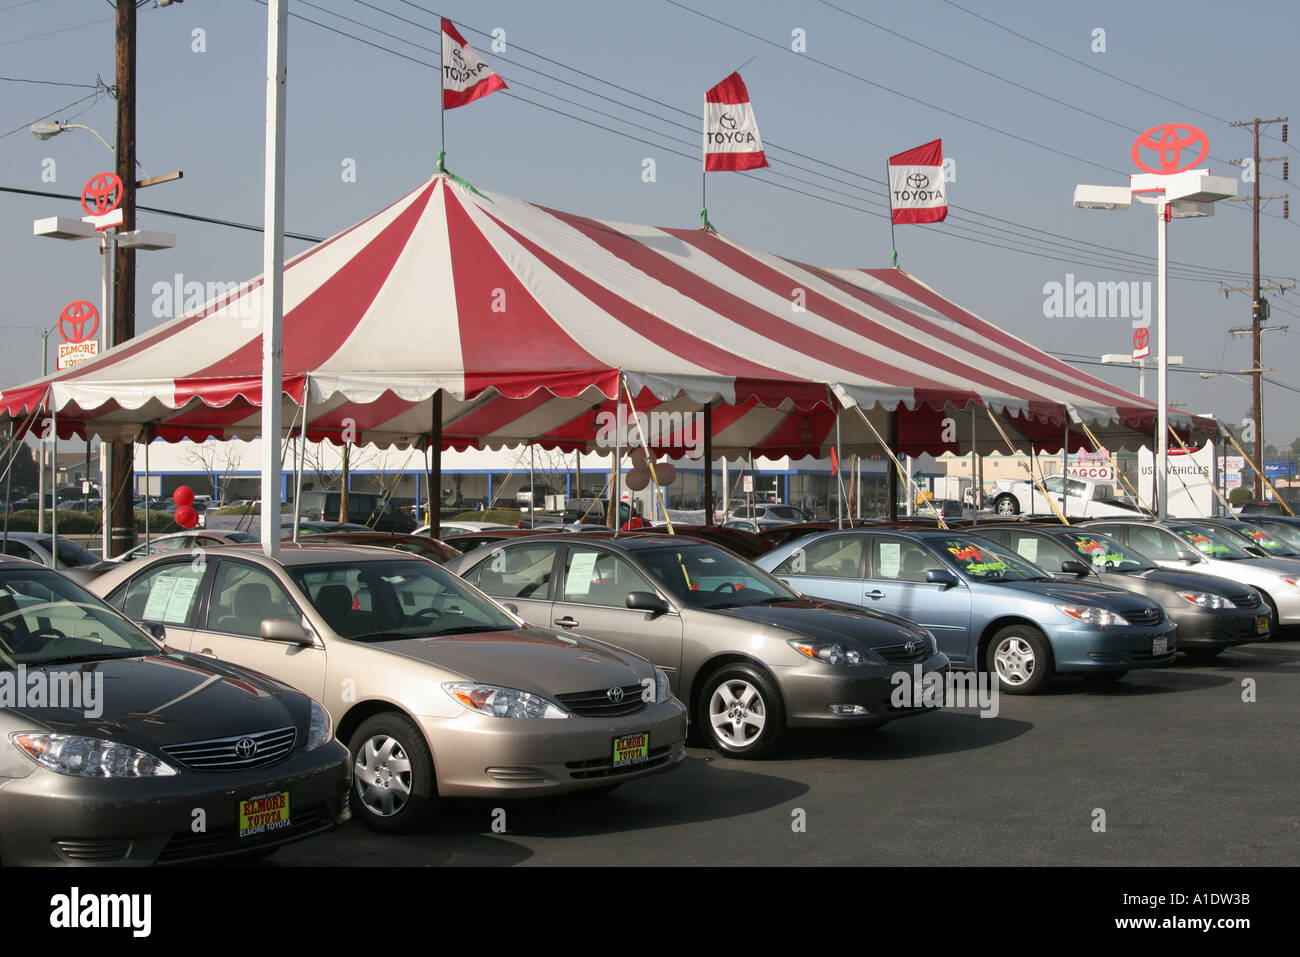 California orange county westminster elmore toyota car dealer tent sale banners